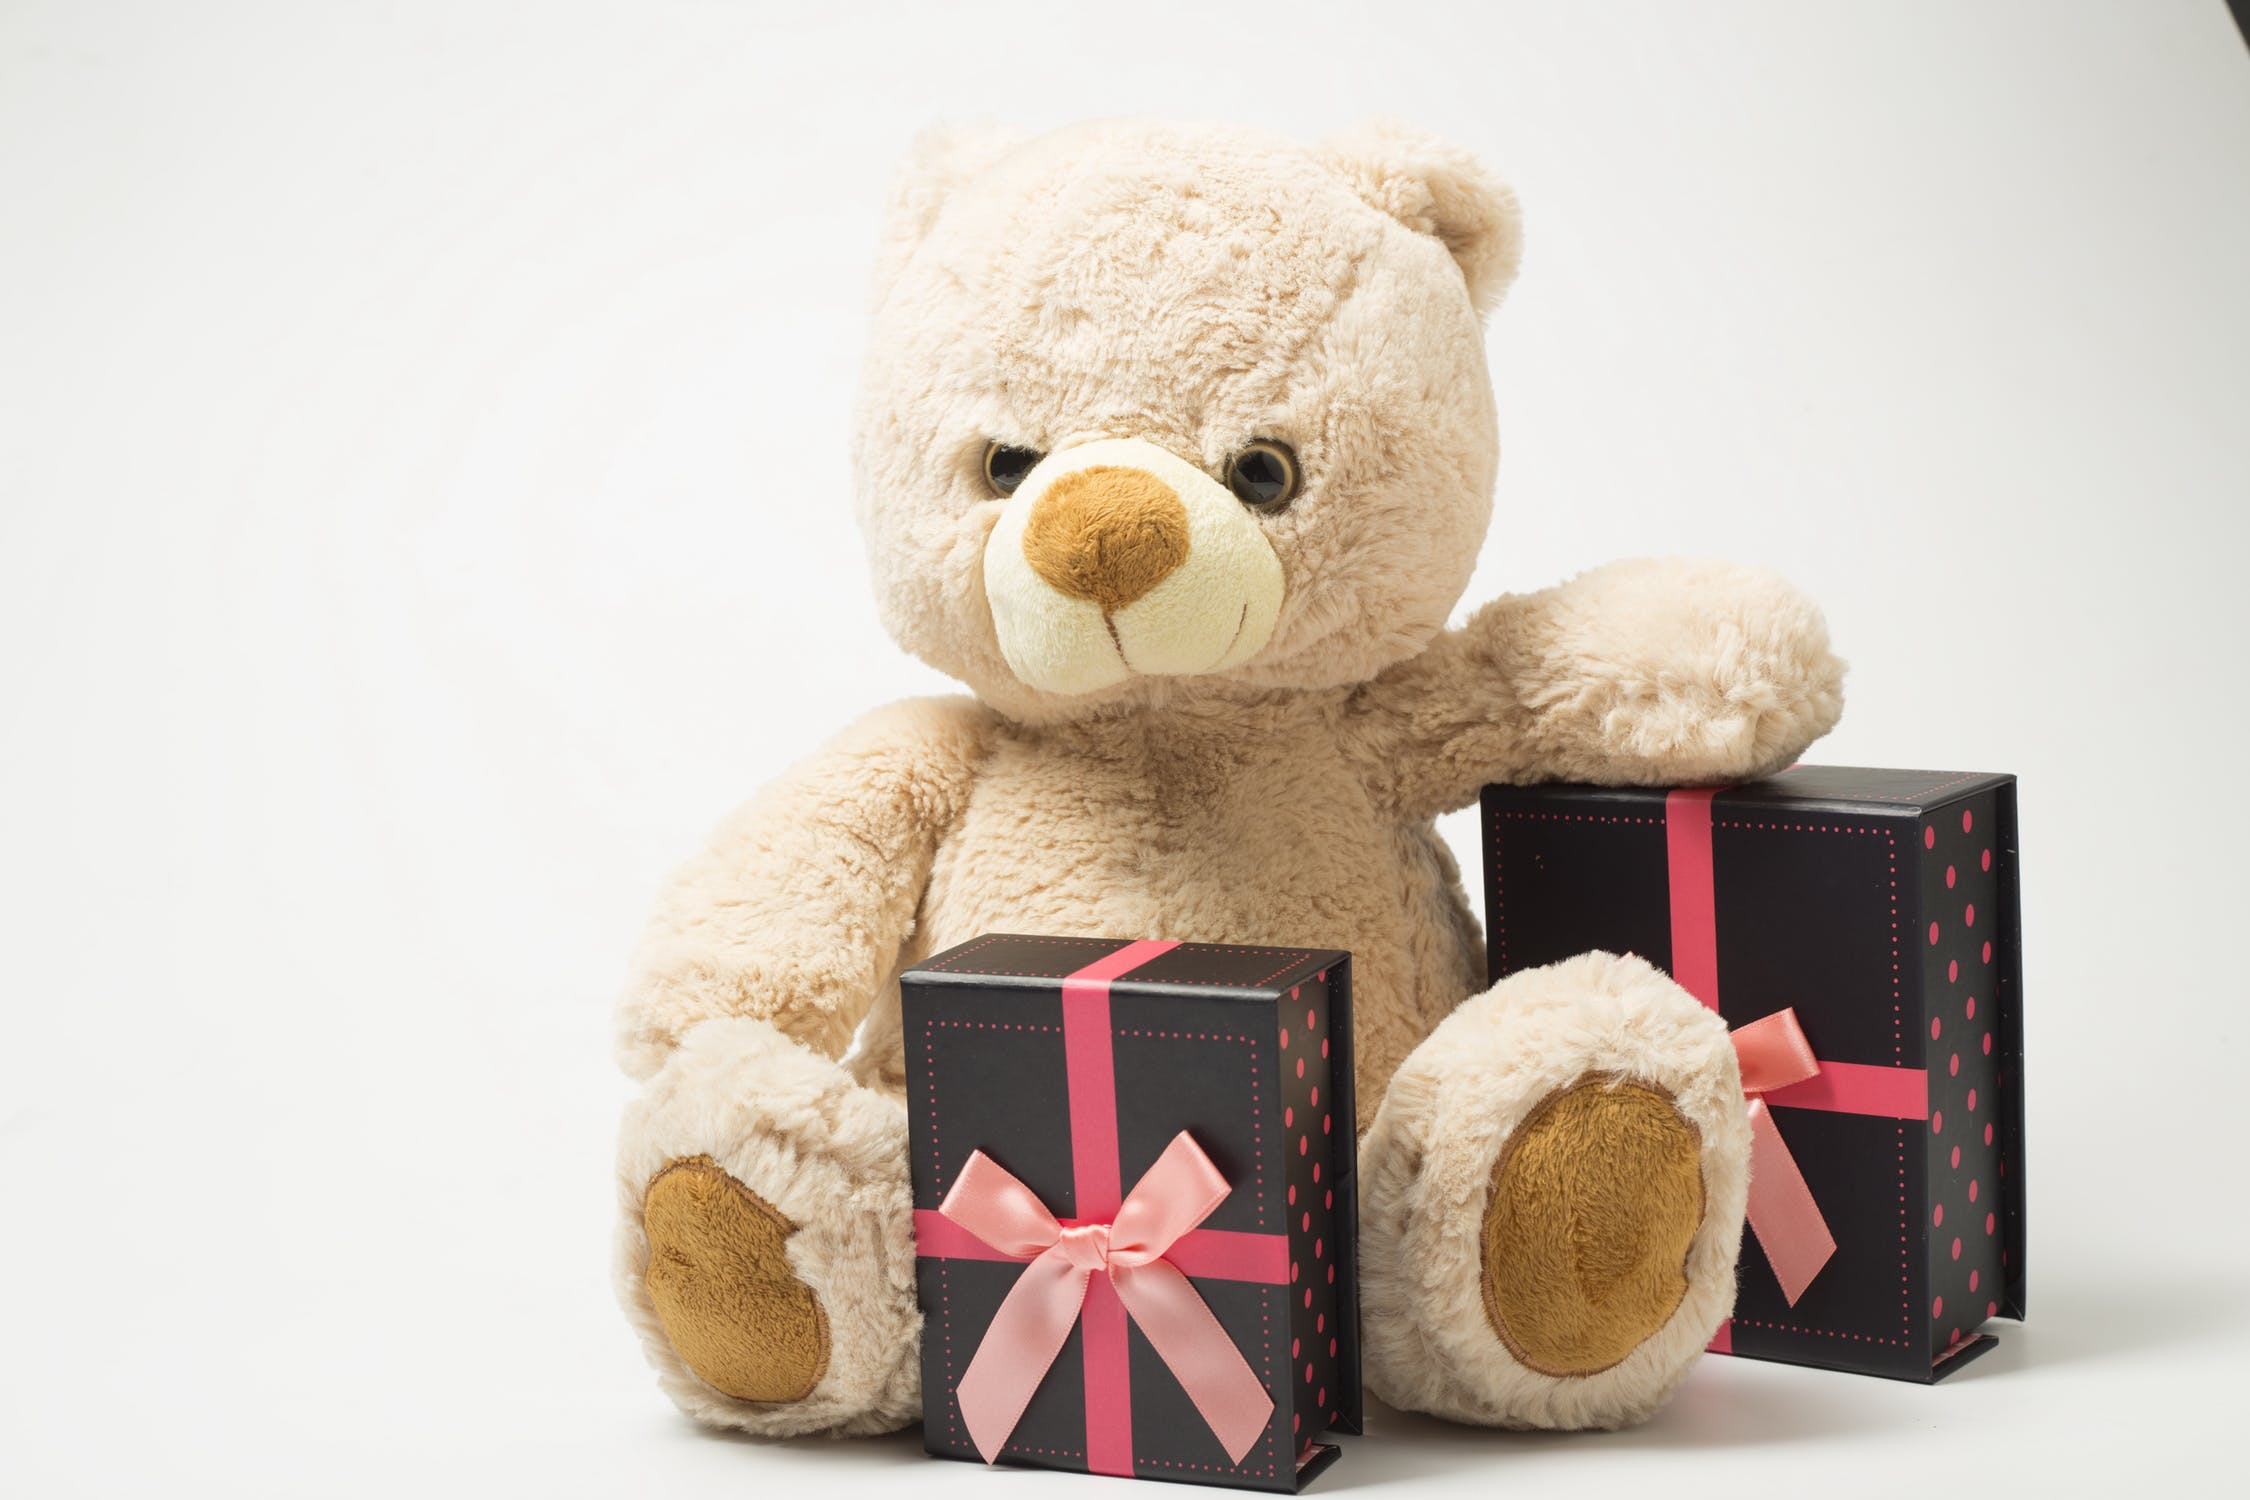 The Best Places to Buy Gifts for Kids in Metro Detroit